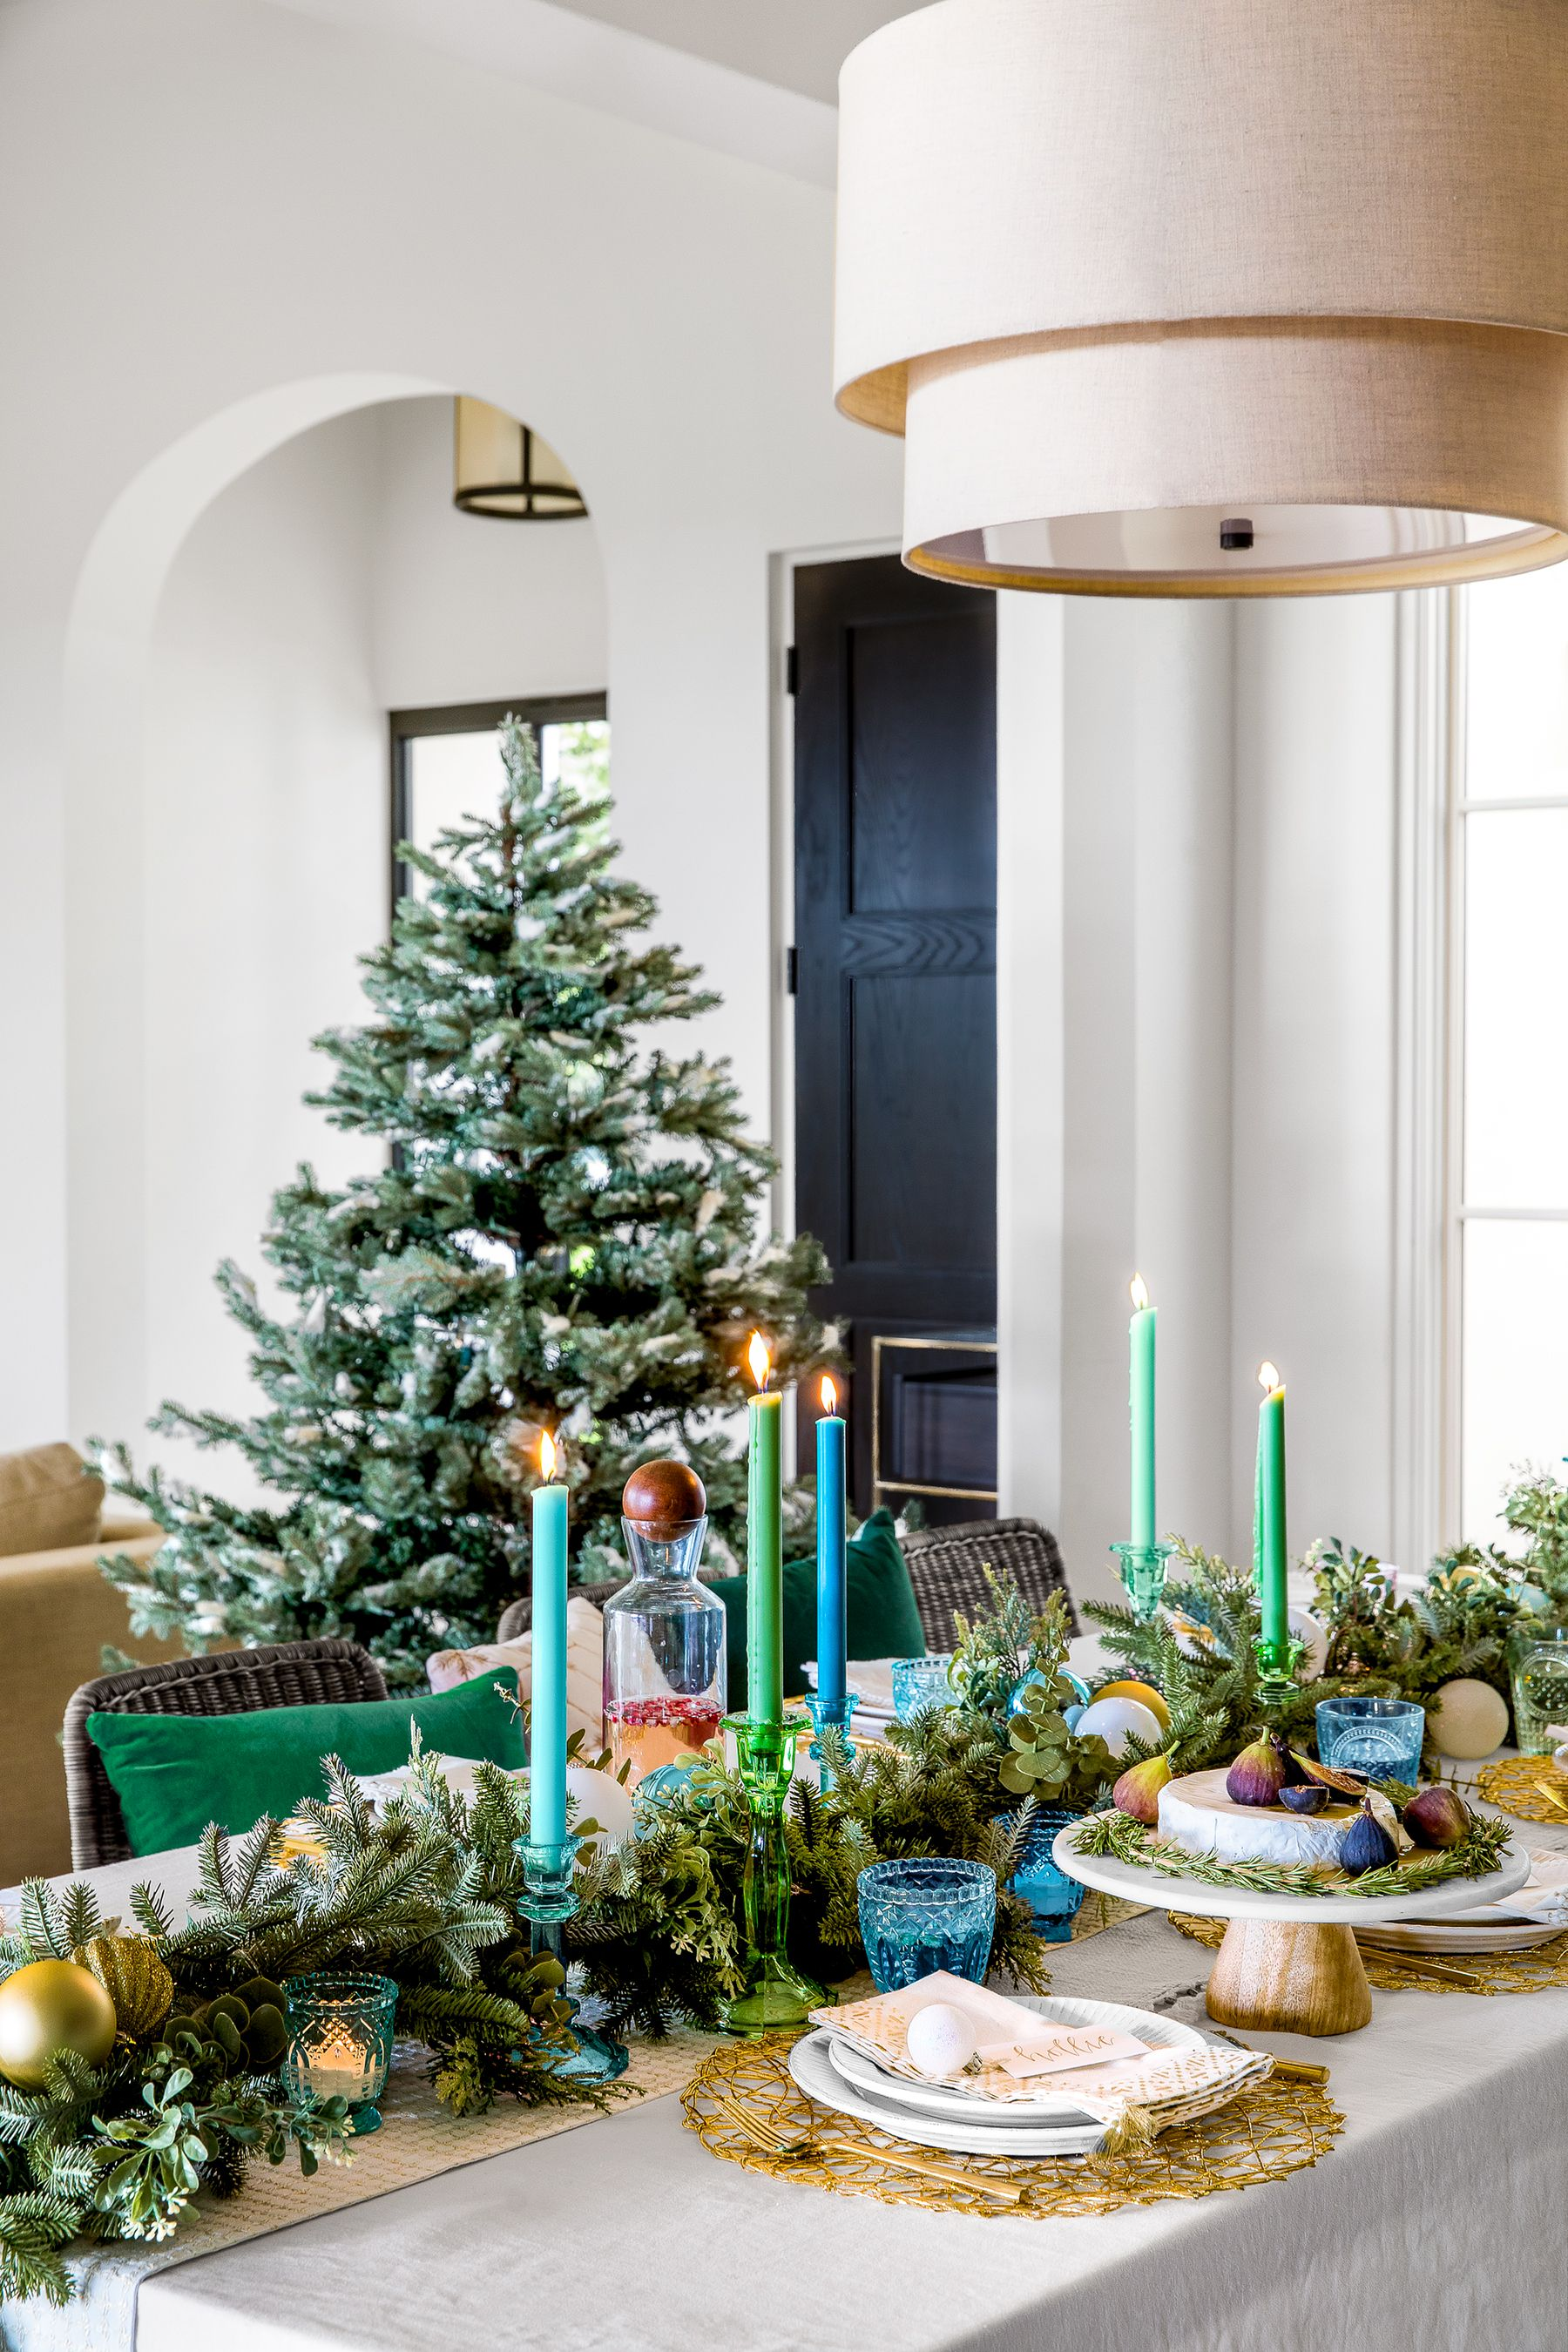 25 Christmas Garland Ideas - Decorating